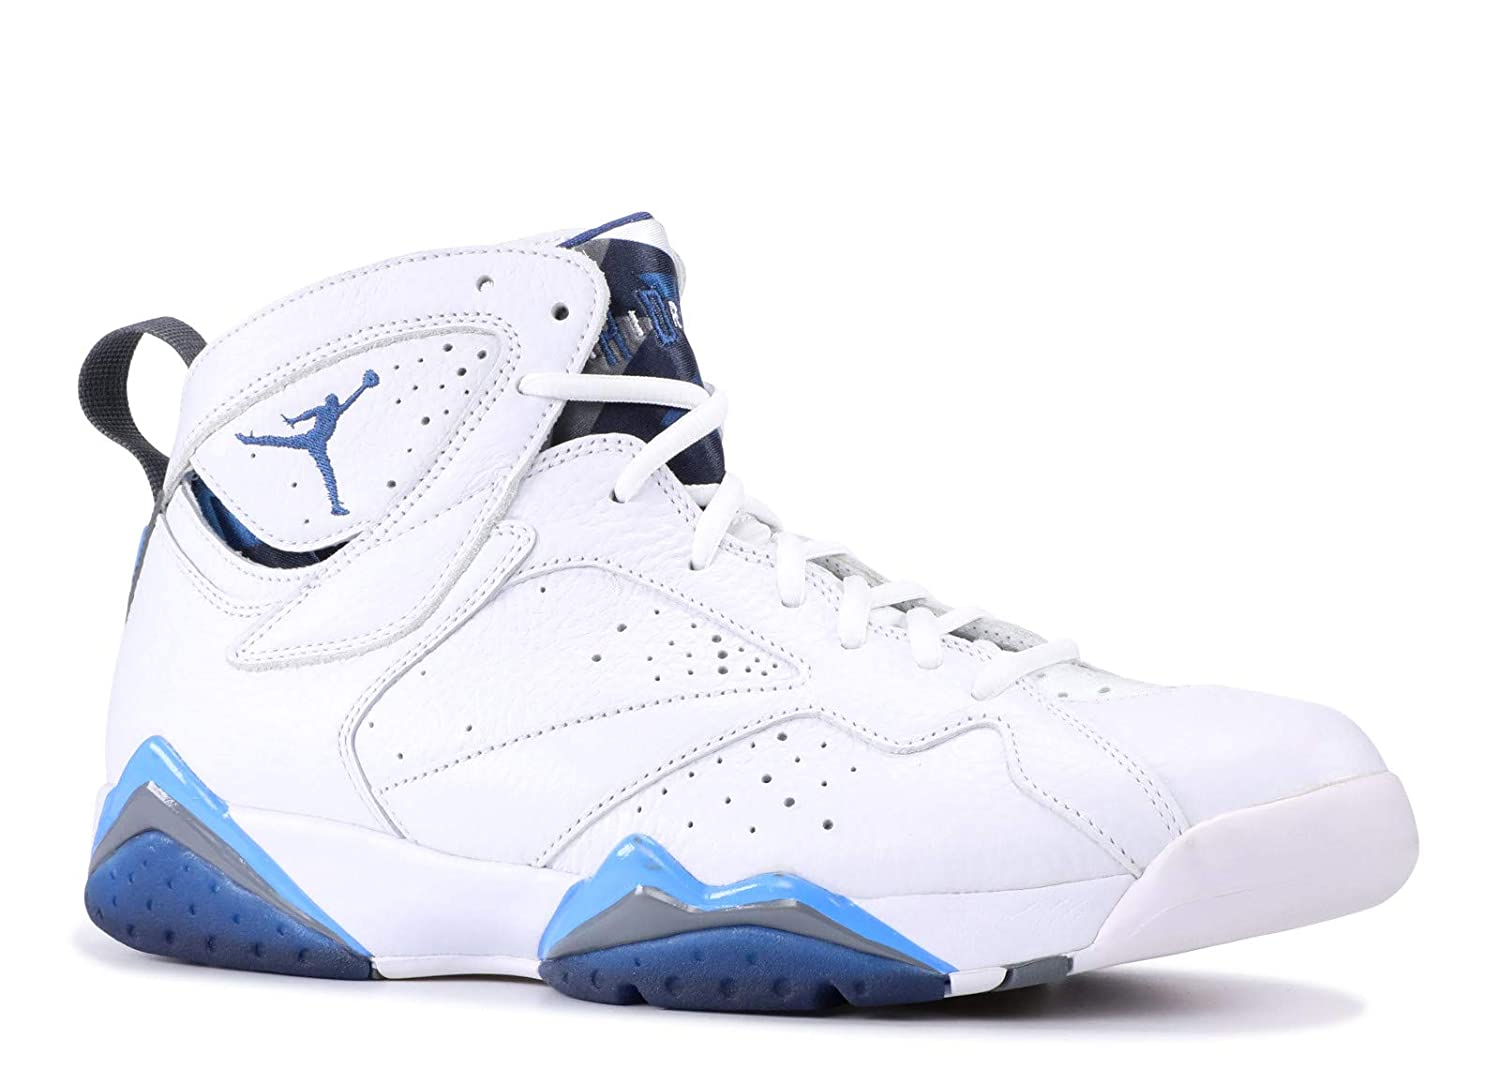 Jordan Air 7 Retro French Blue Men s Shoes White Frech Blue-University Blue-Flint Grey 304775-107